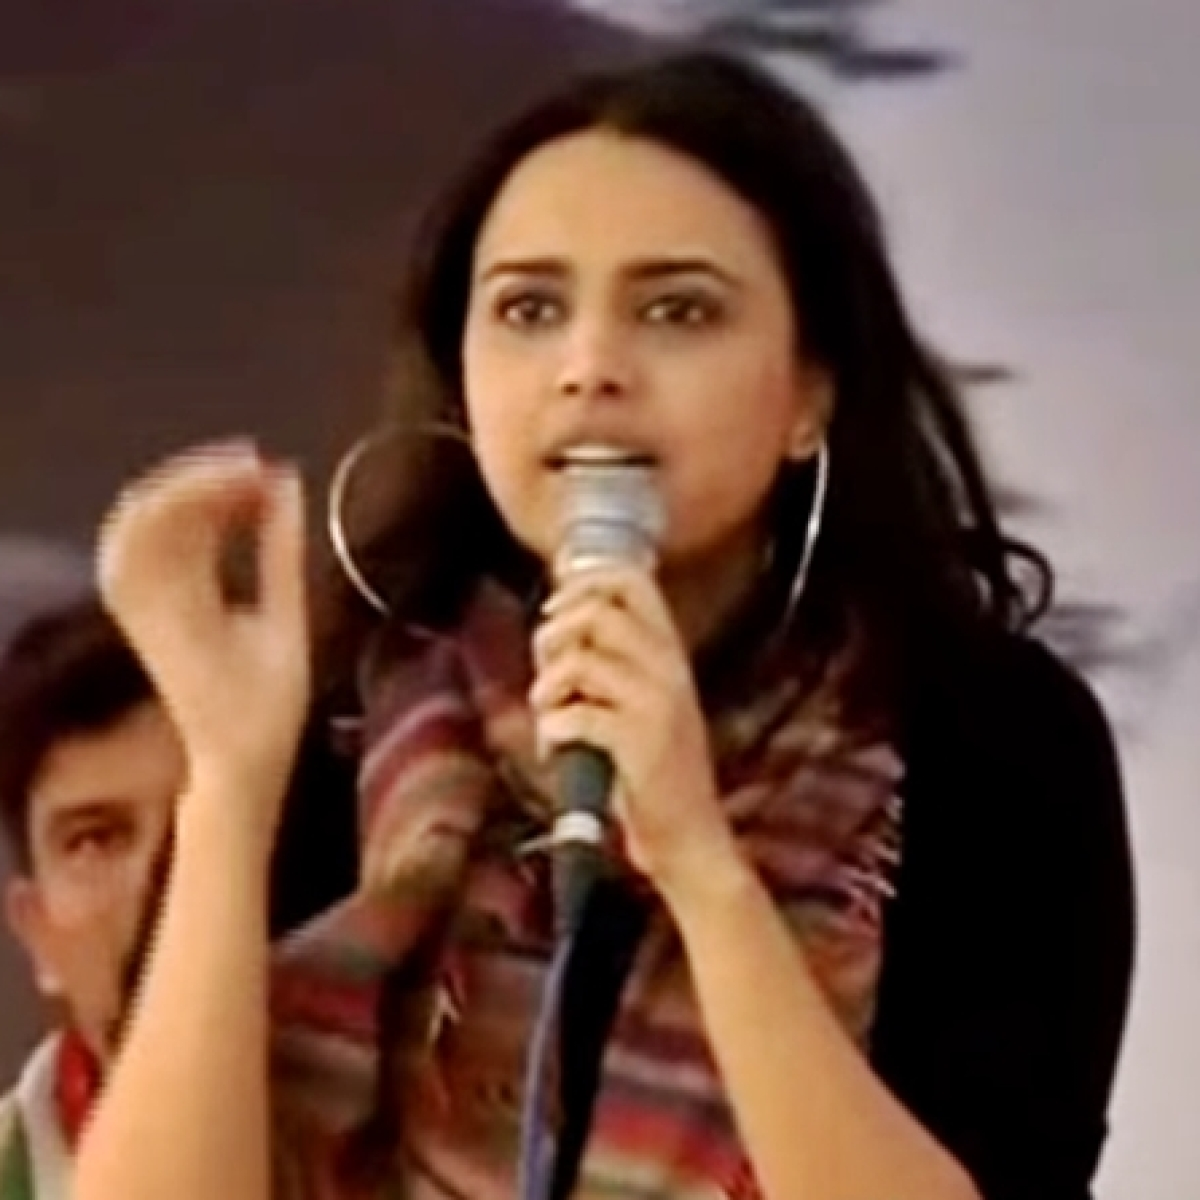 'My turn as Arnab': Watch Swara Bhasker's fiery speech against those 'trying to divide the nation'